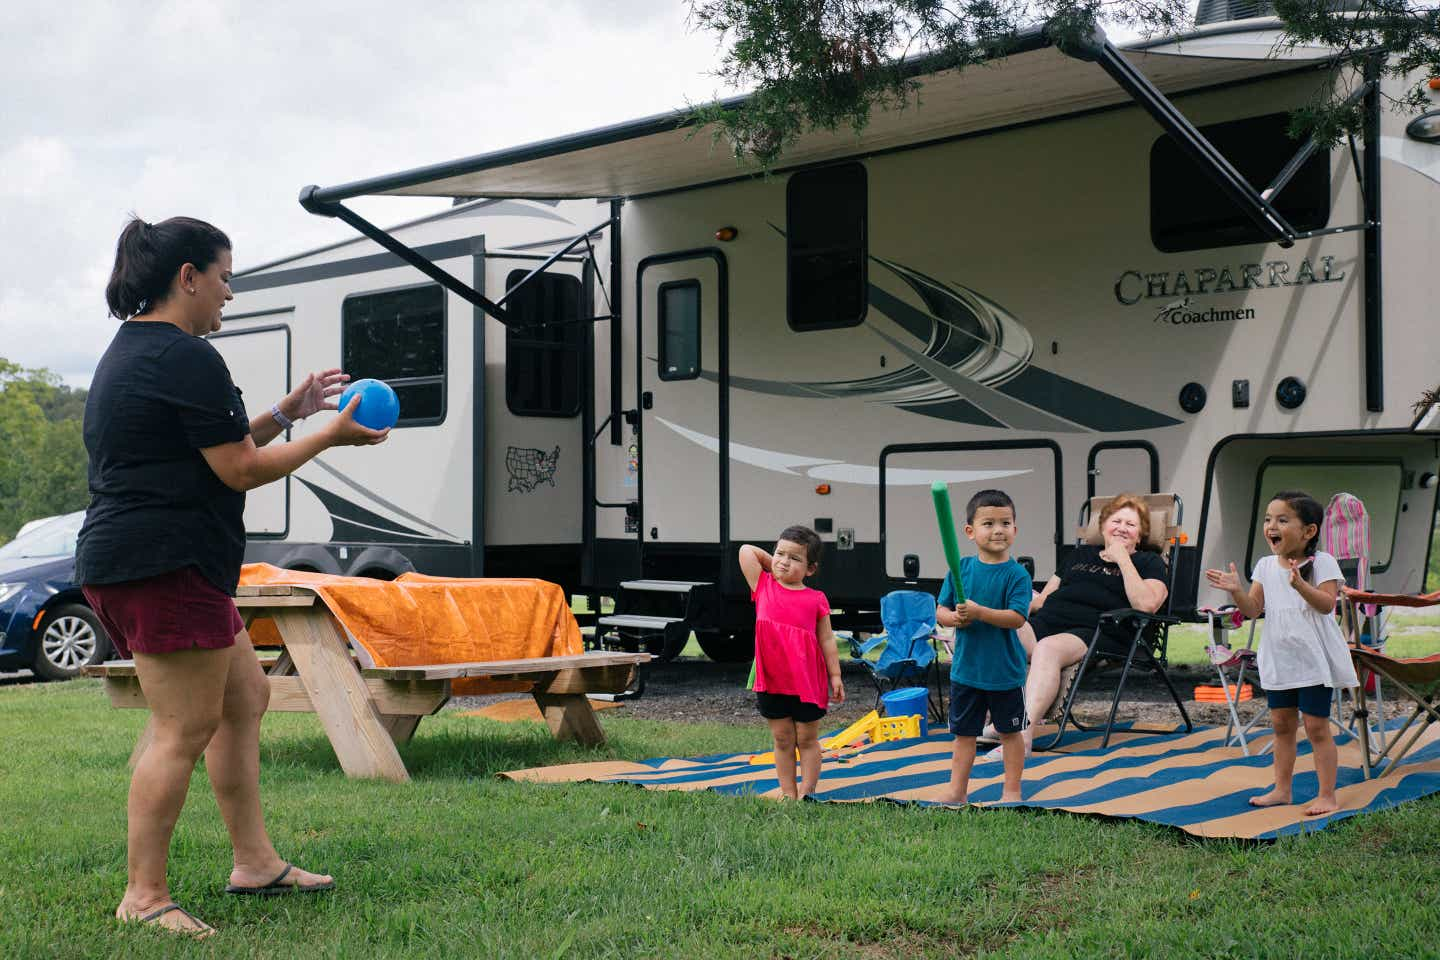 Angelica (left) plays with her three children outside their RV with her mother looking onward behind the children.